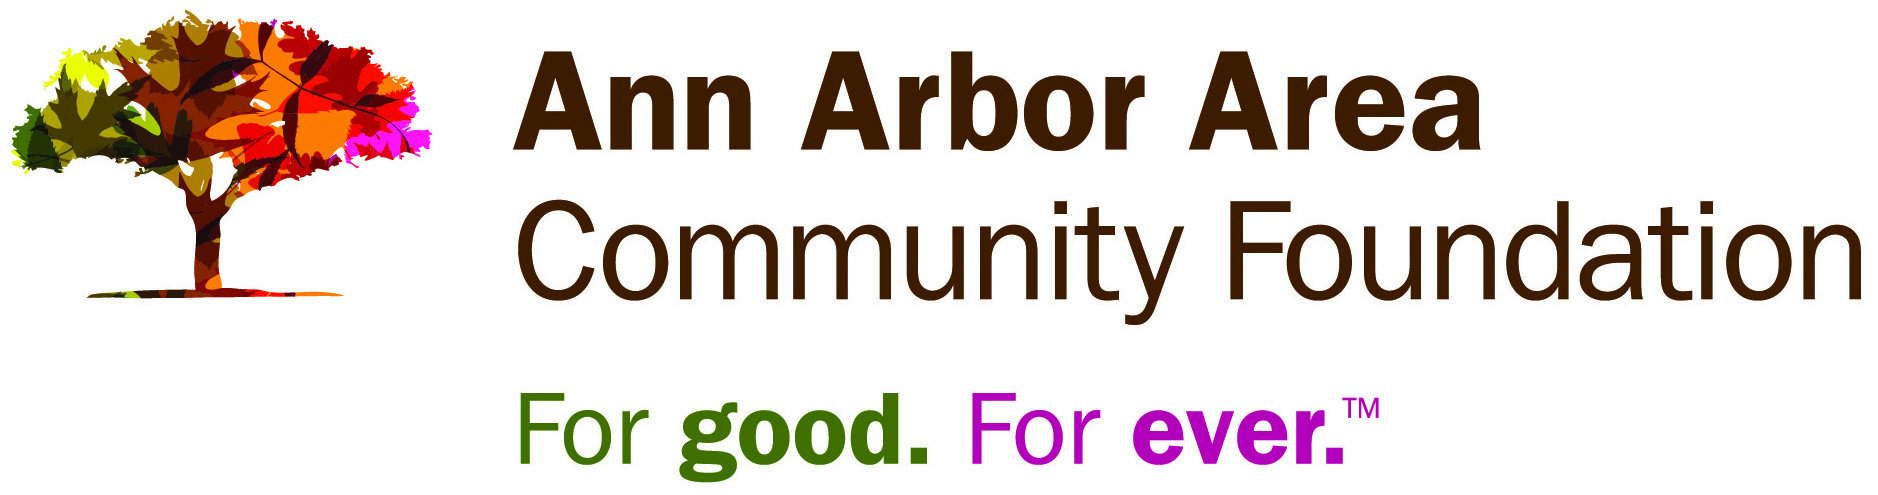 ann arbor area community foundation logo